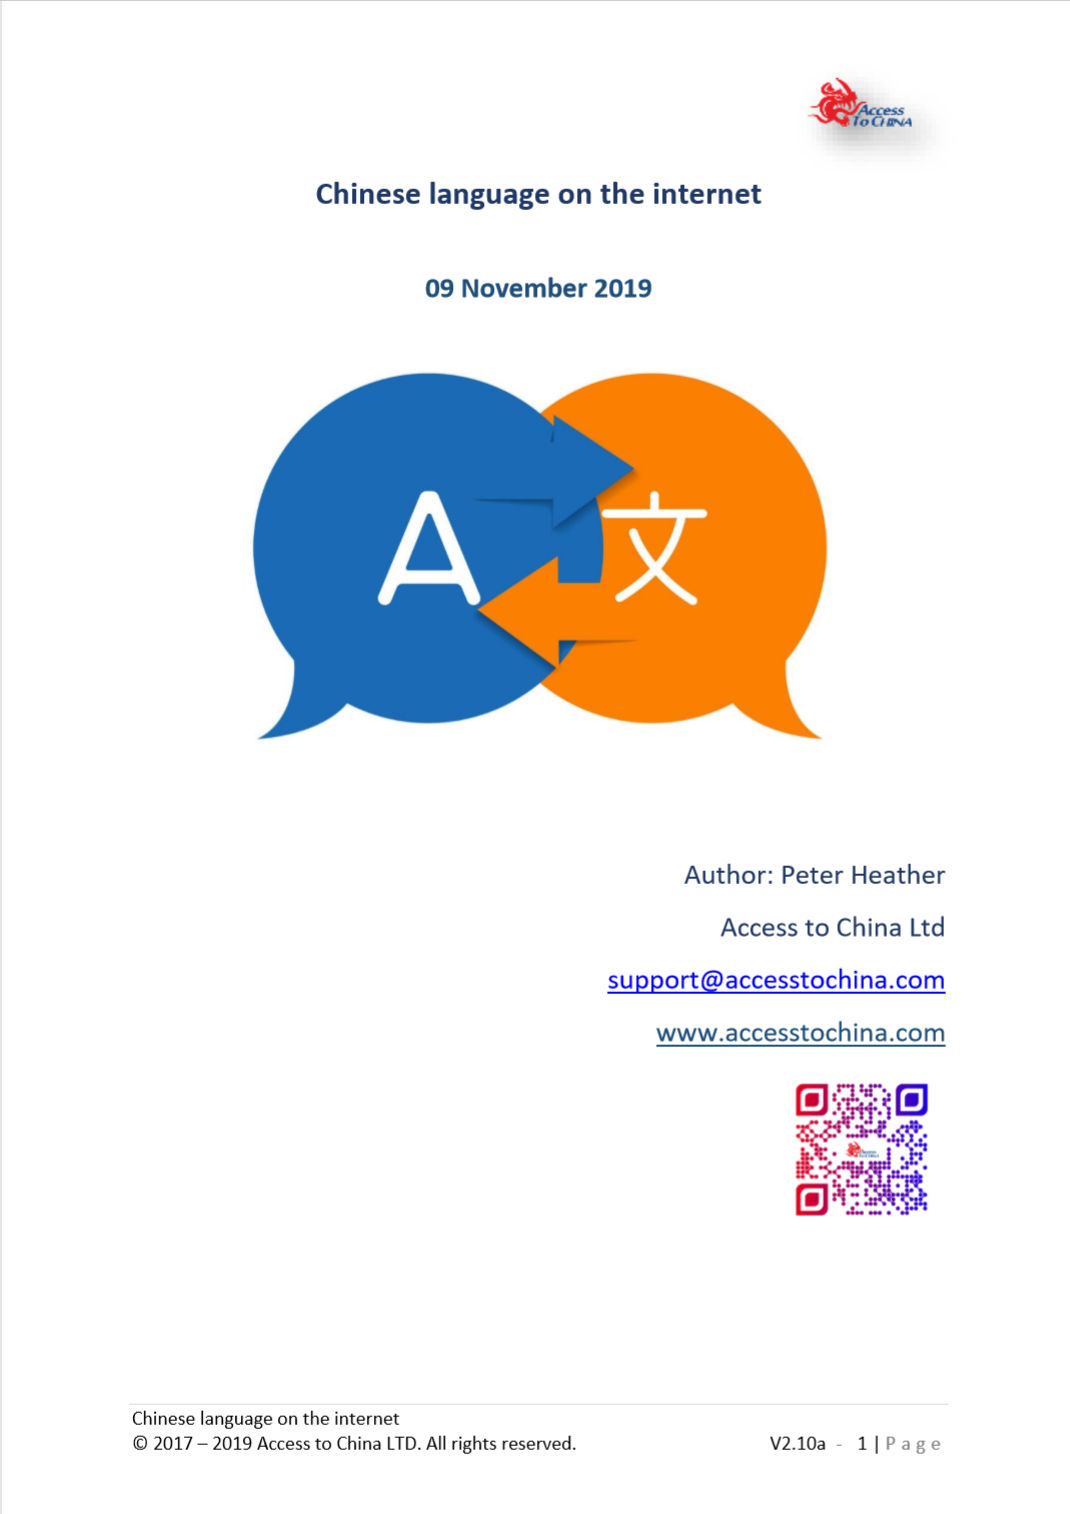 Access to China Chinese language on the internet report cover 2.10